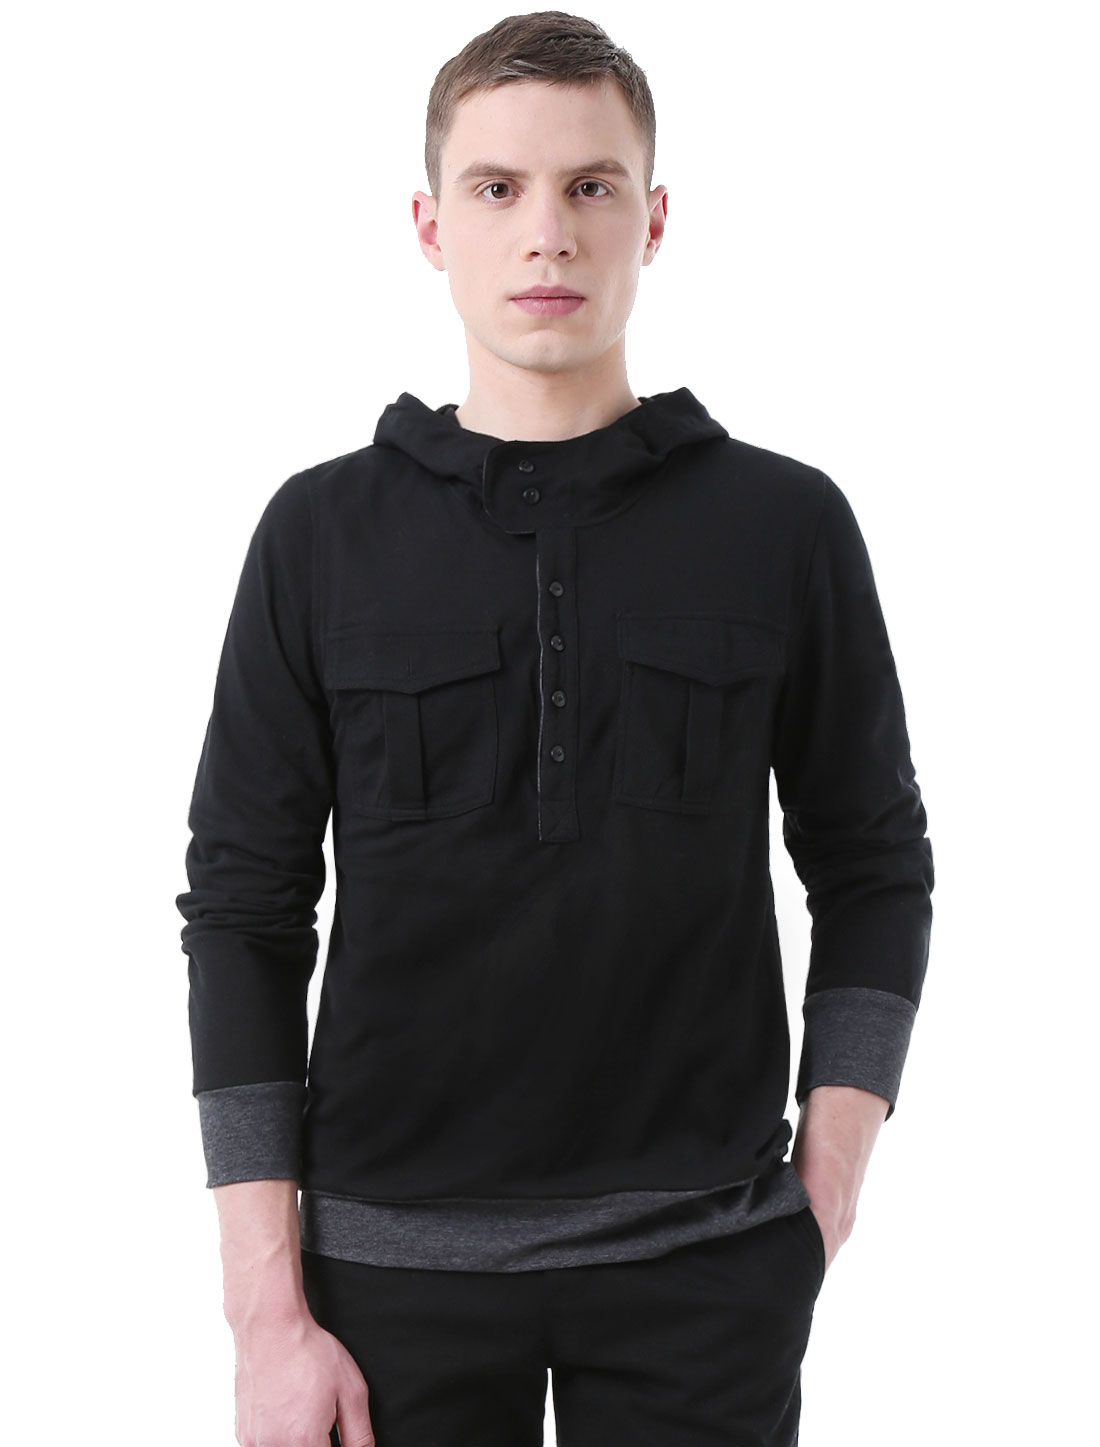 Men Patch Sleeves Placket Front Slim Fit Hooded Shirt Black M